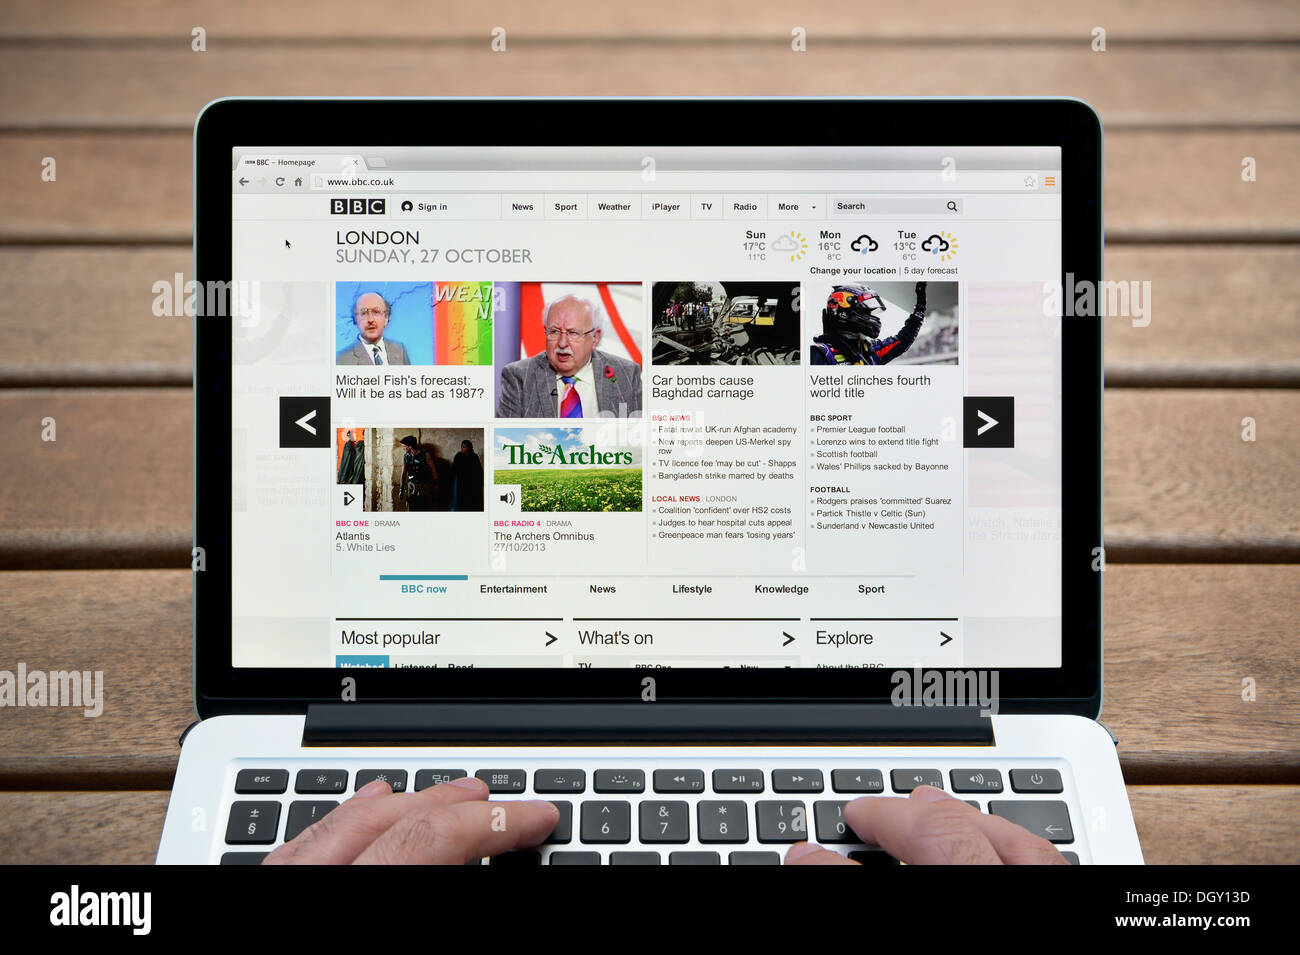 The BBC Online website on a MacBook against a wooden bench outdoor background including a man's fingers (Editorial use only). - Stock Image